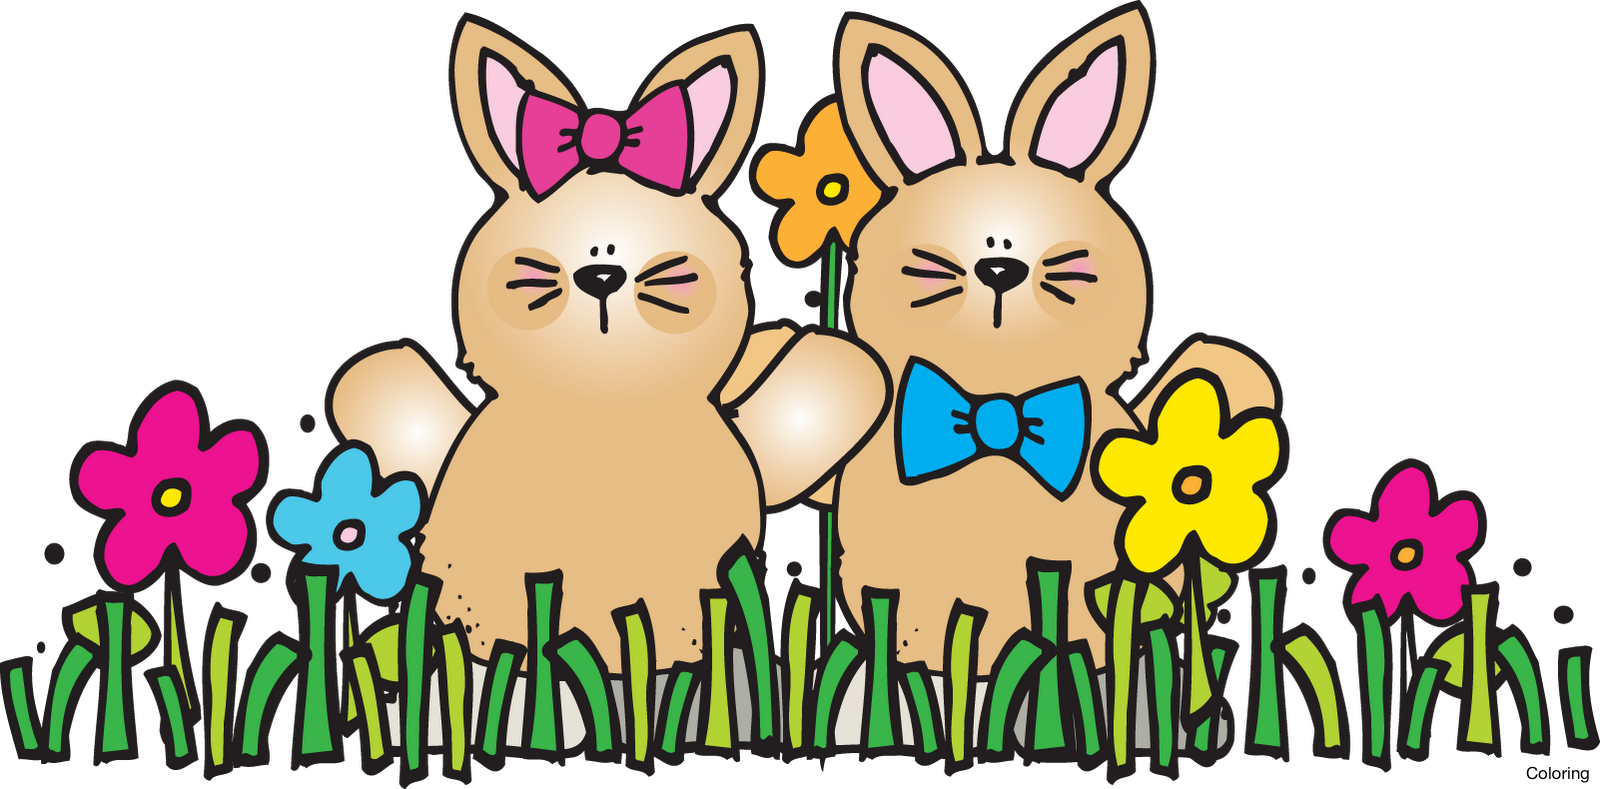 Bunny at getdrawings com. Holidays clipart spring